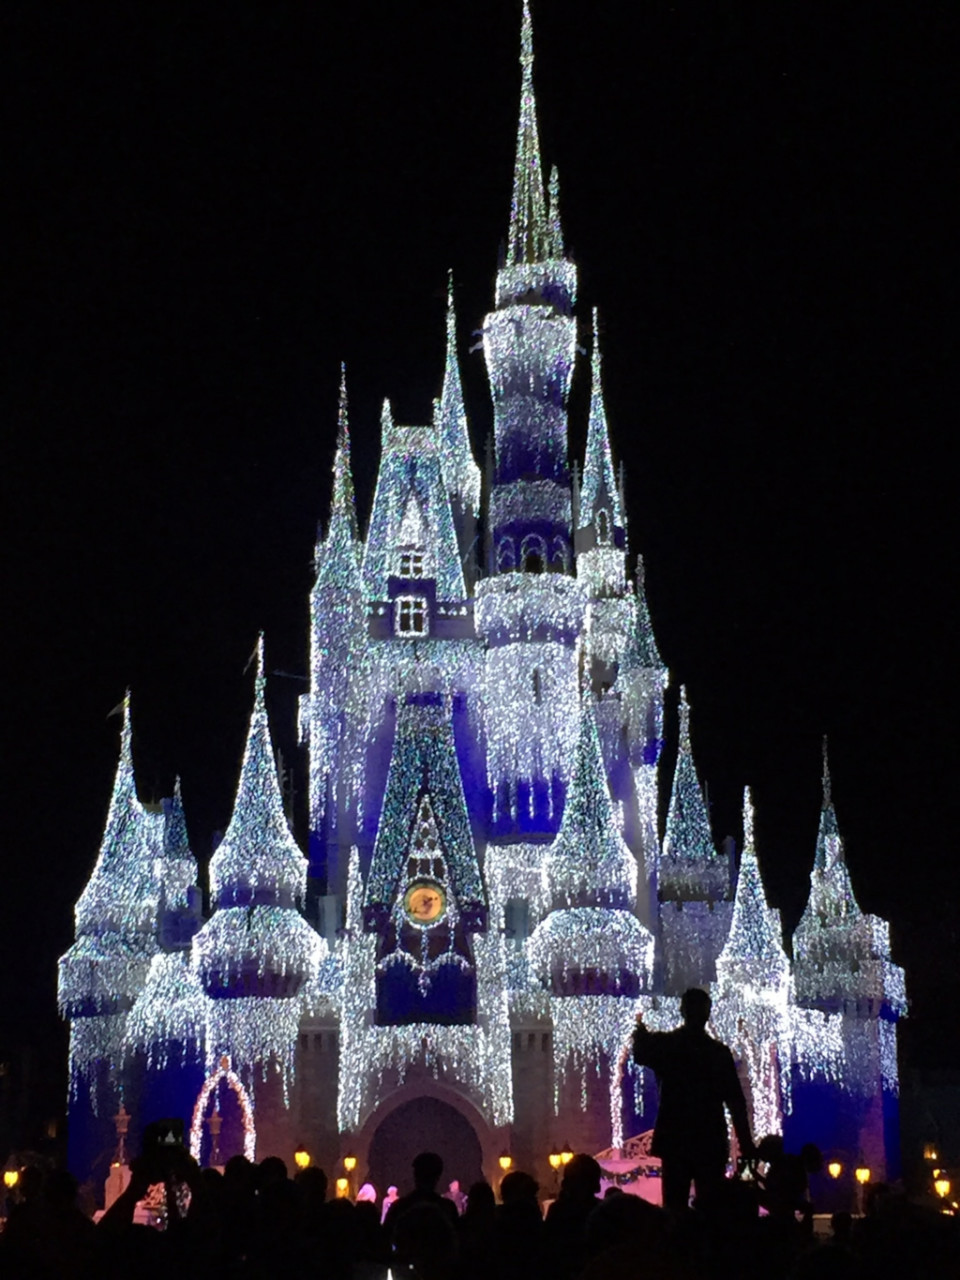 Disney's Frozen themed light show at Disney's Magic Kindgom